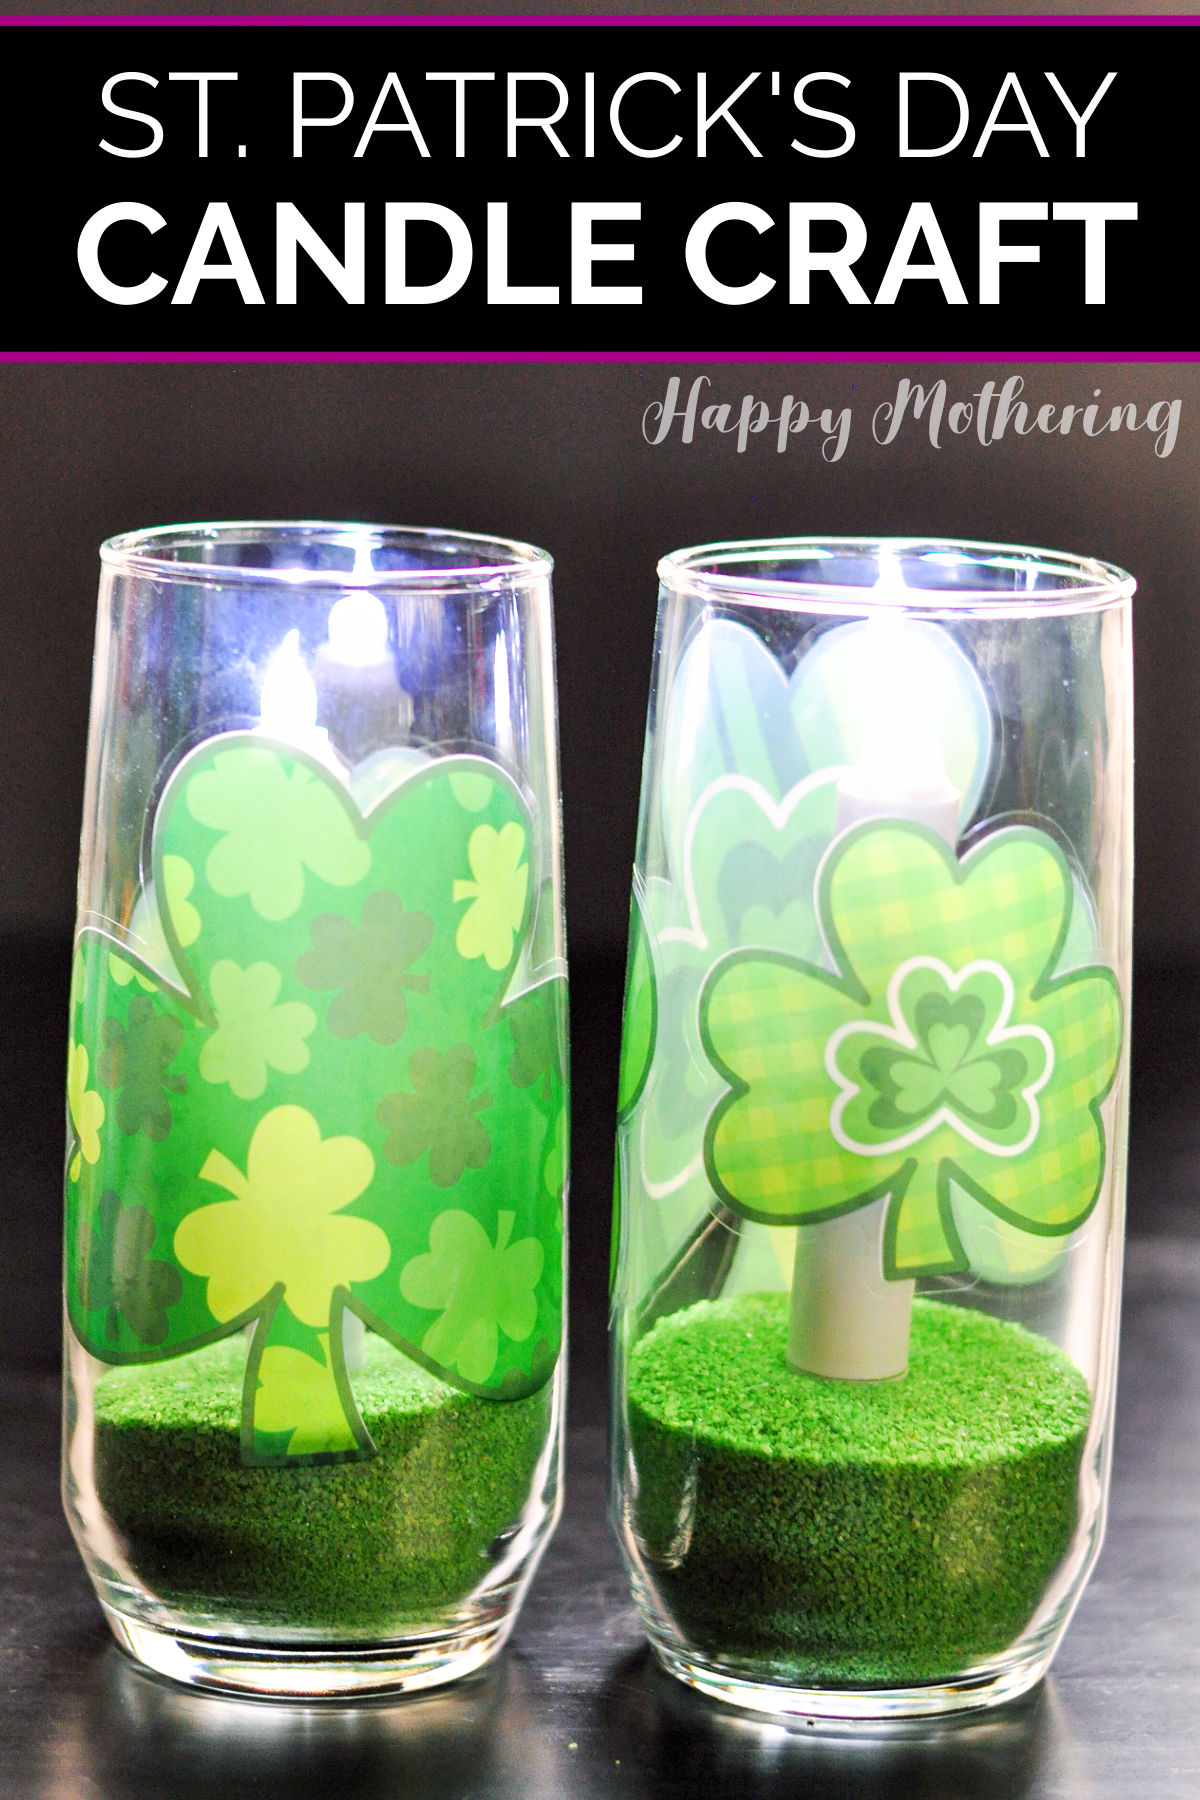 St. Patrick's Day dining table centerpiece featuring Shamrocks